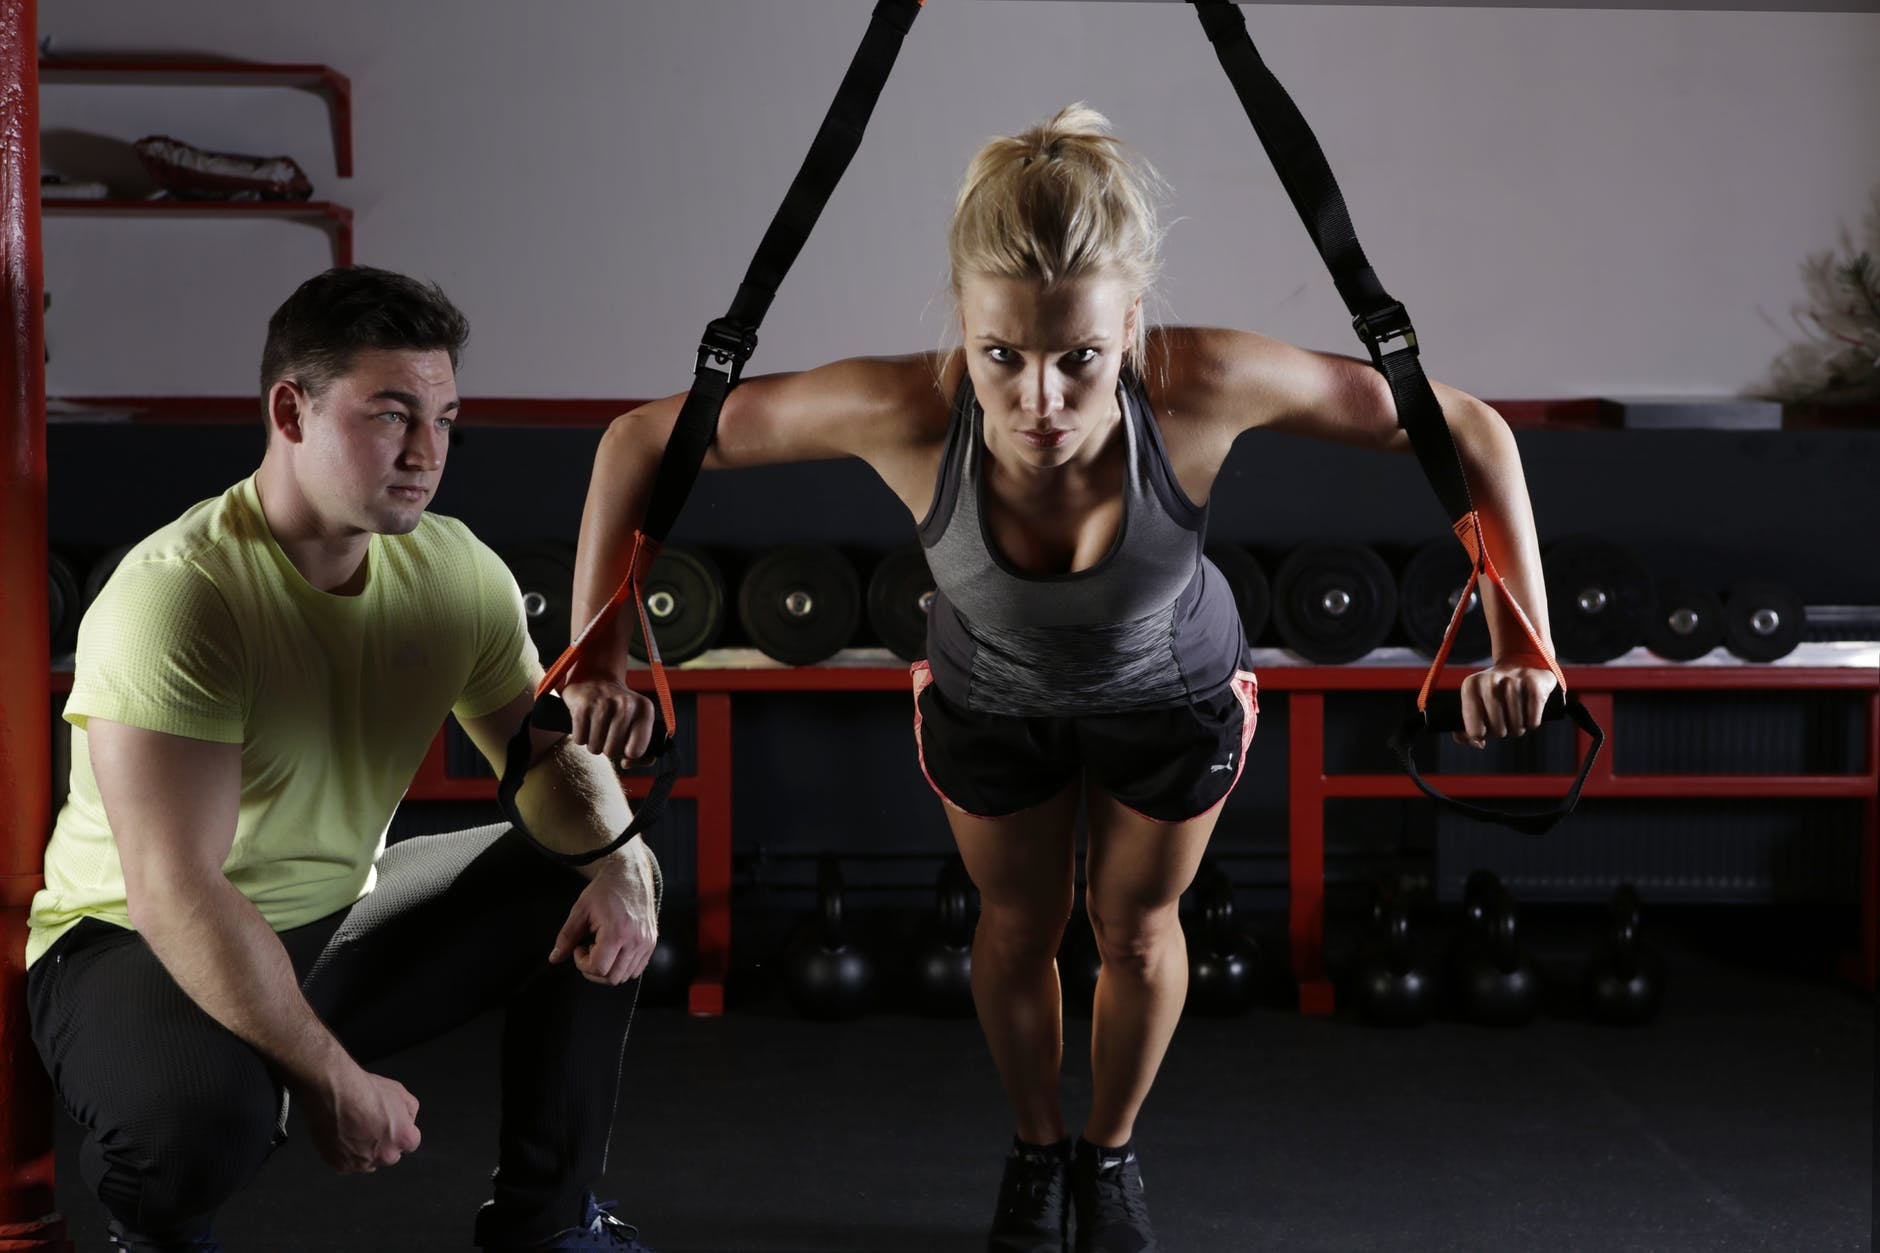 Weightlifting Exercises